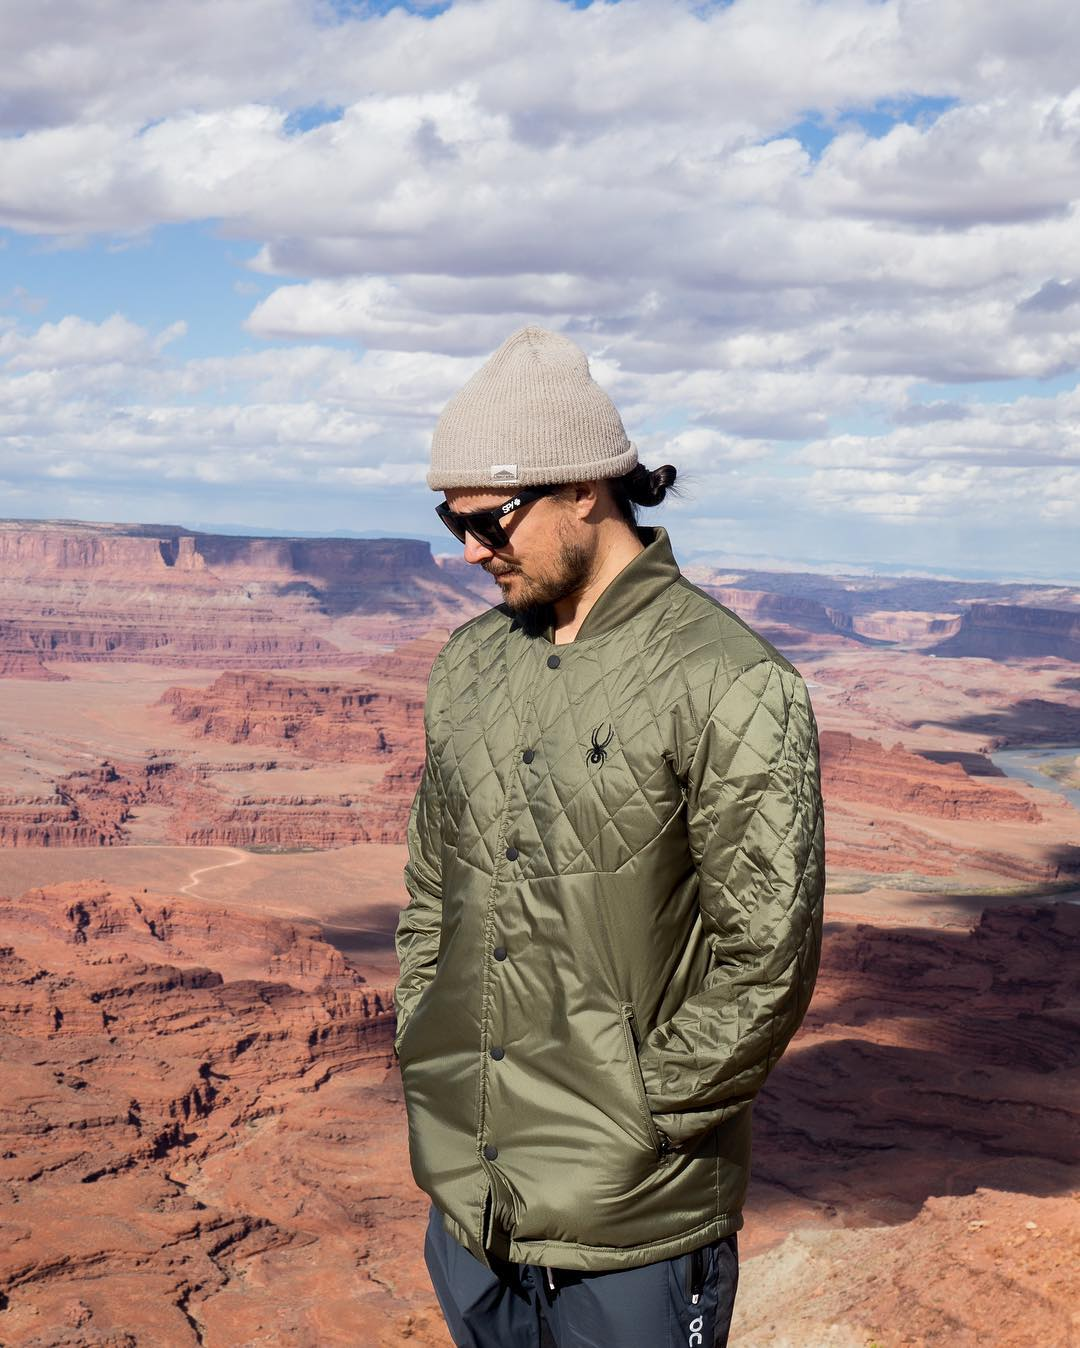 7. Julian Carr - Pro skier, founder of Discrete Clothing and Cirque Series, activist, and world record holder.